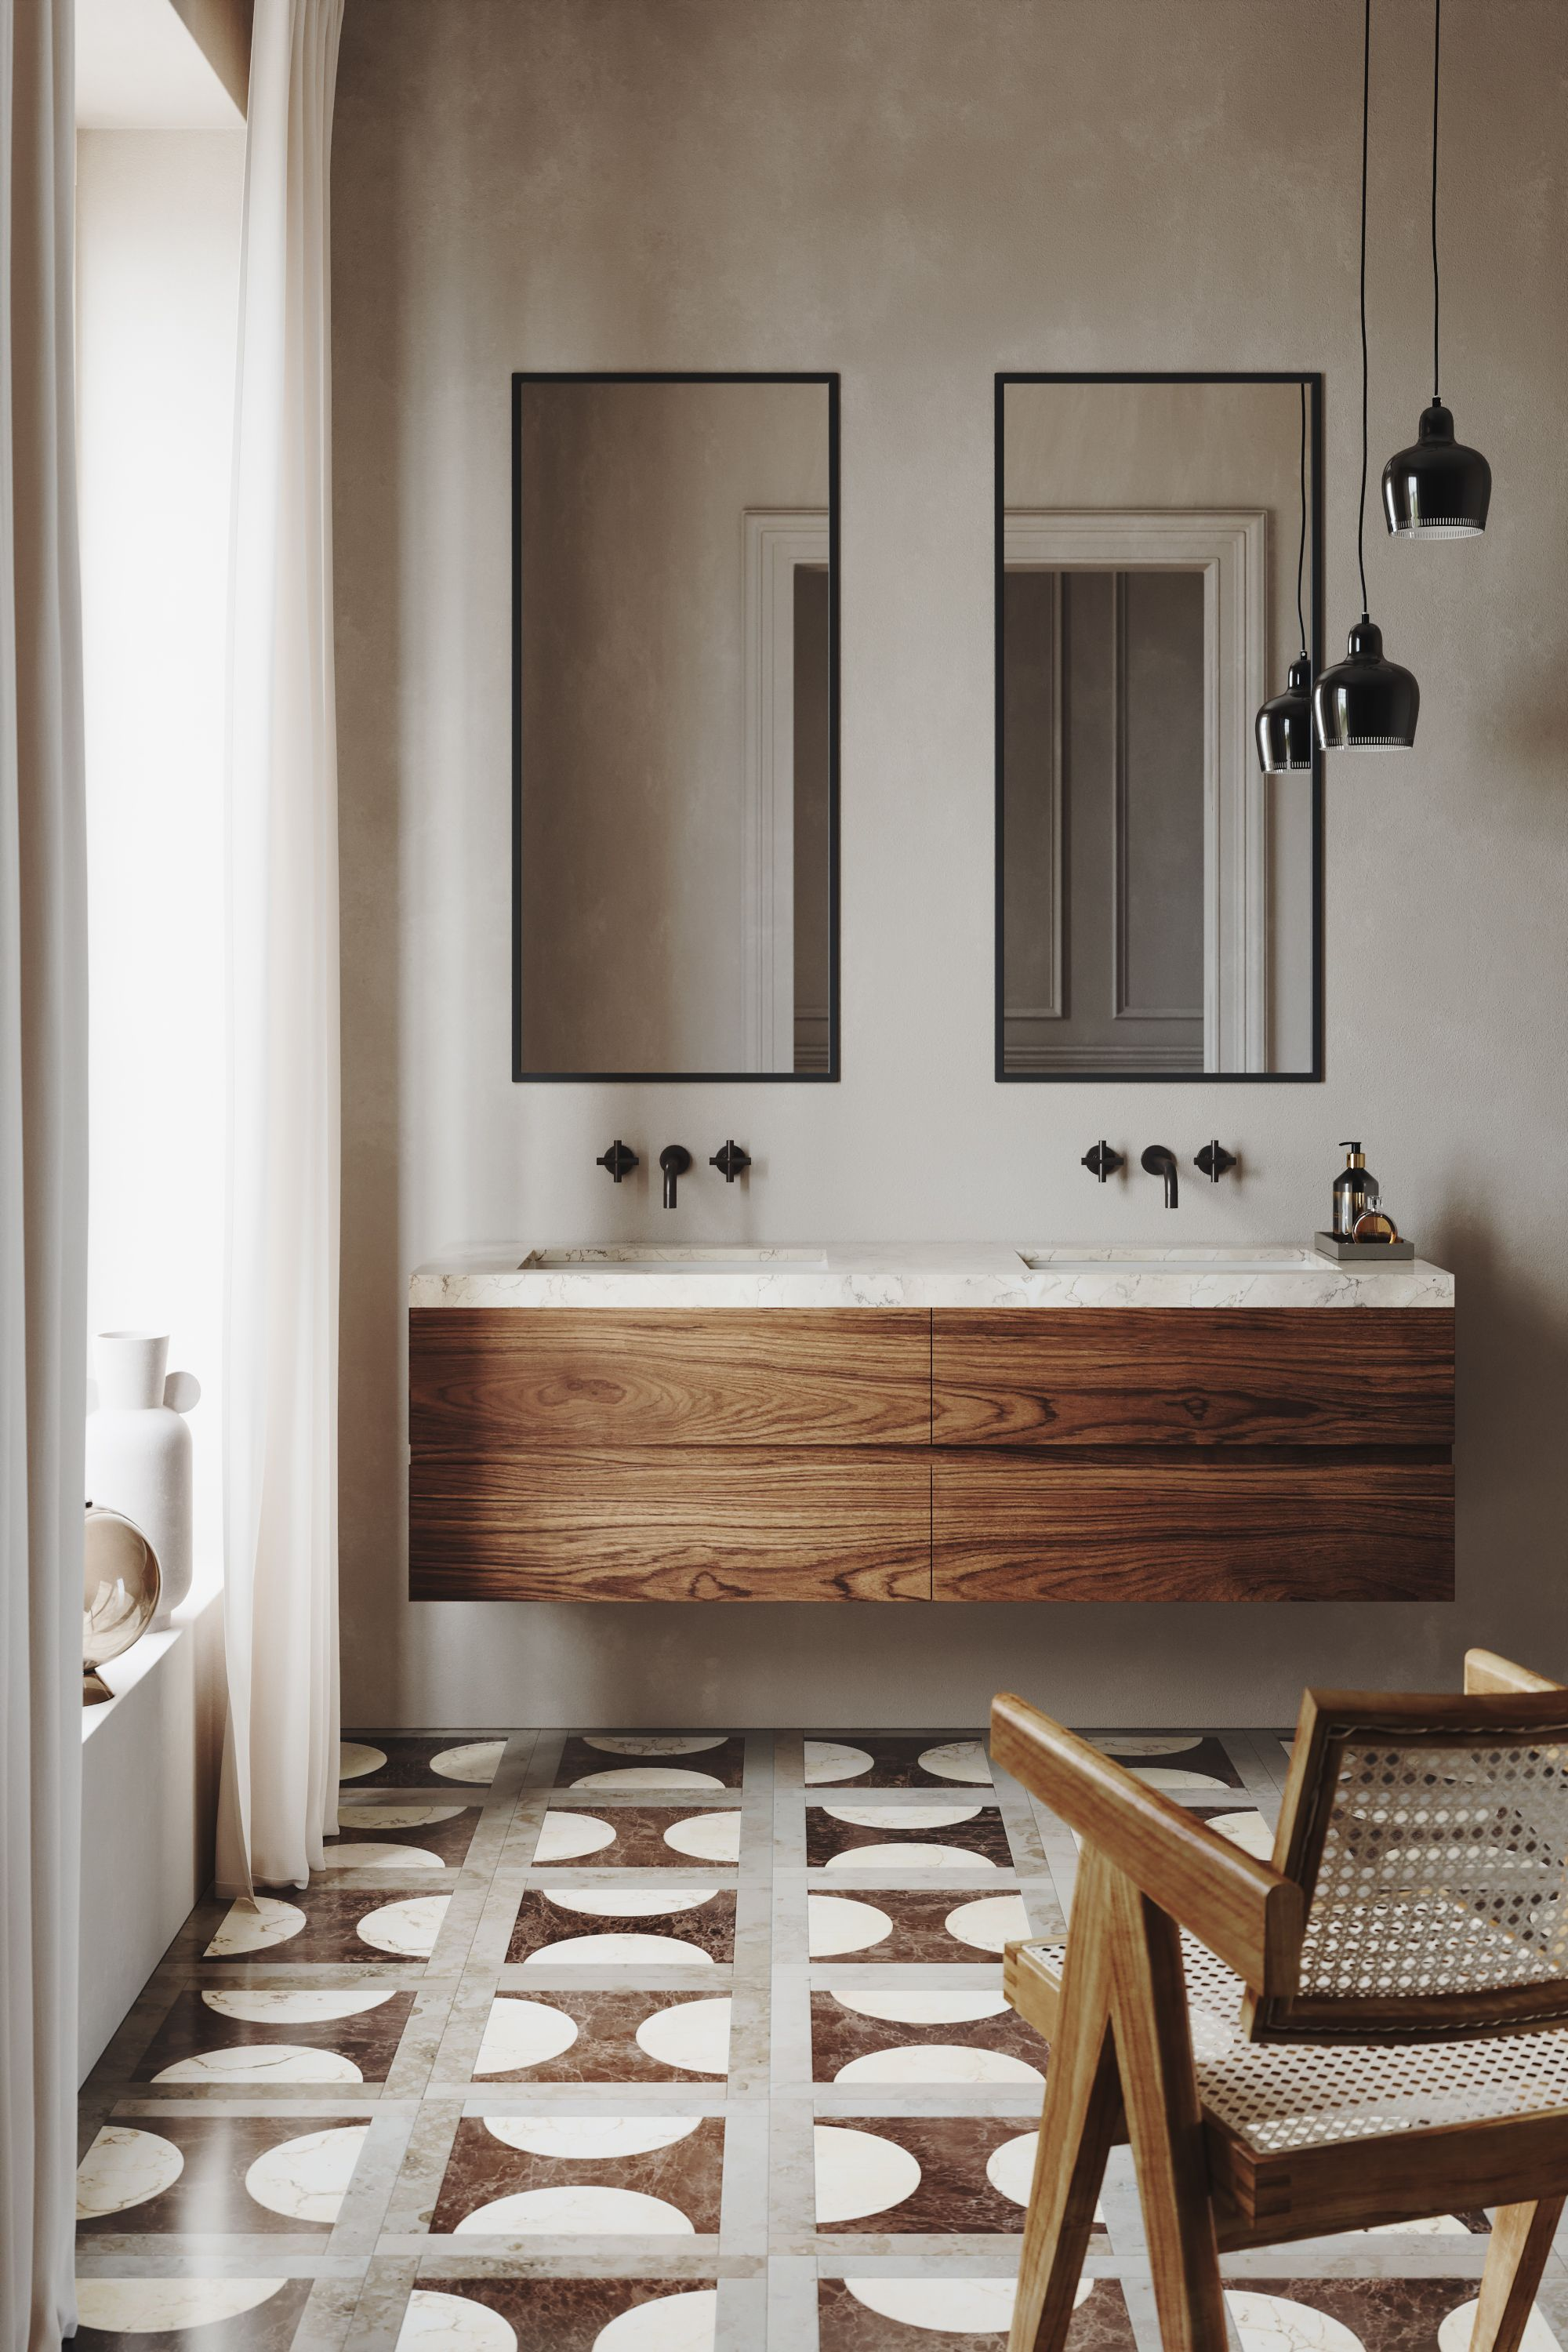 Design by Vanitas Studio - using a unique tile pattern to be the feature of the bathroom.